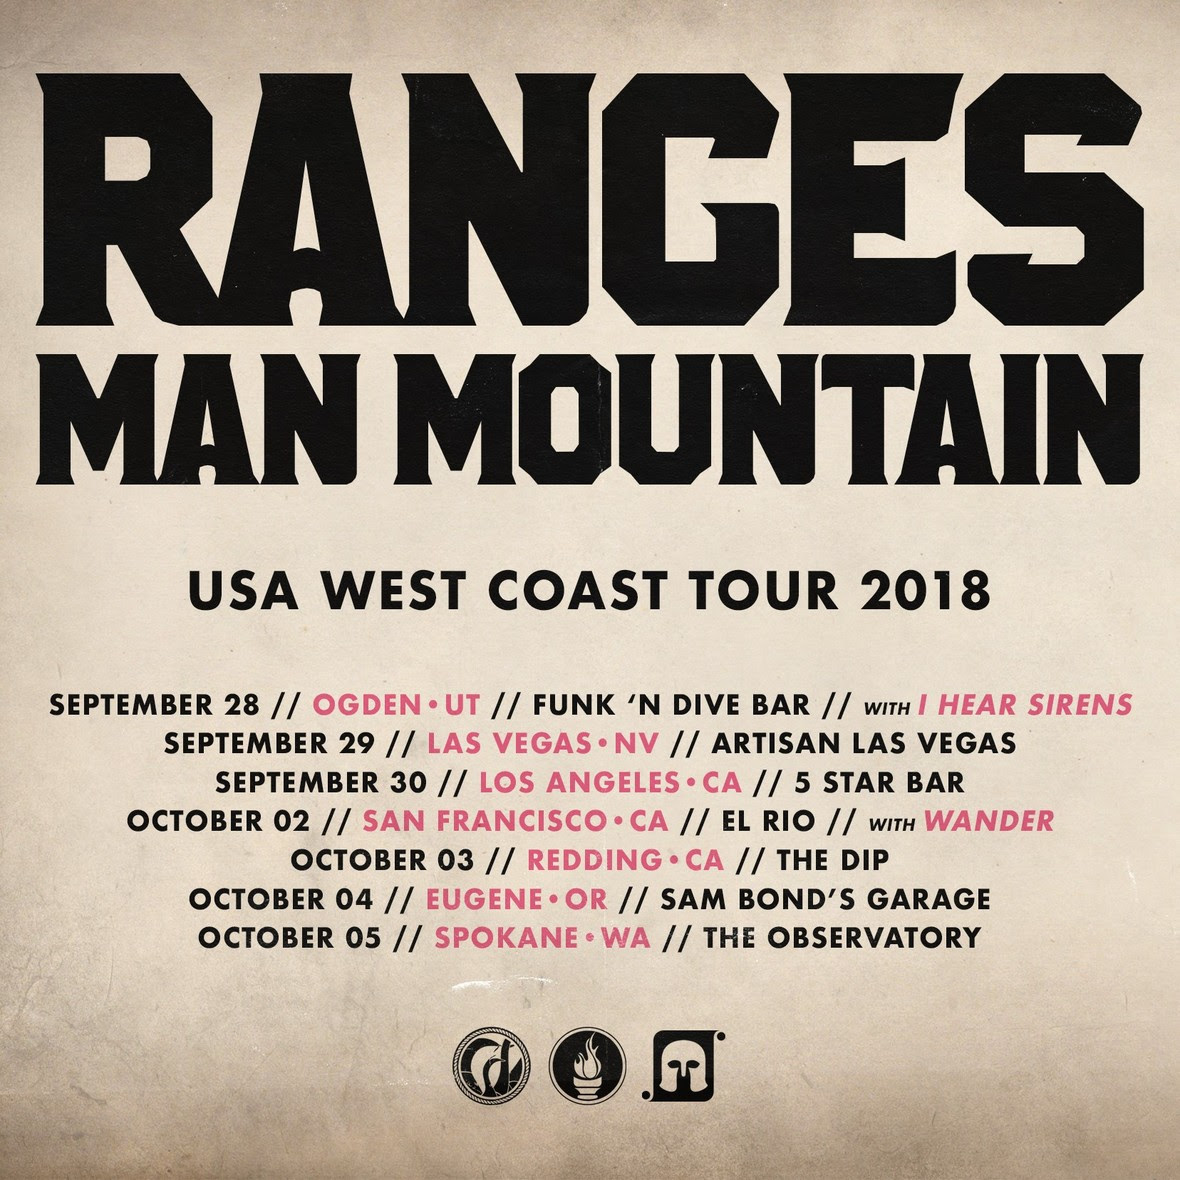 man mountain ranges tour